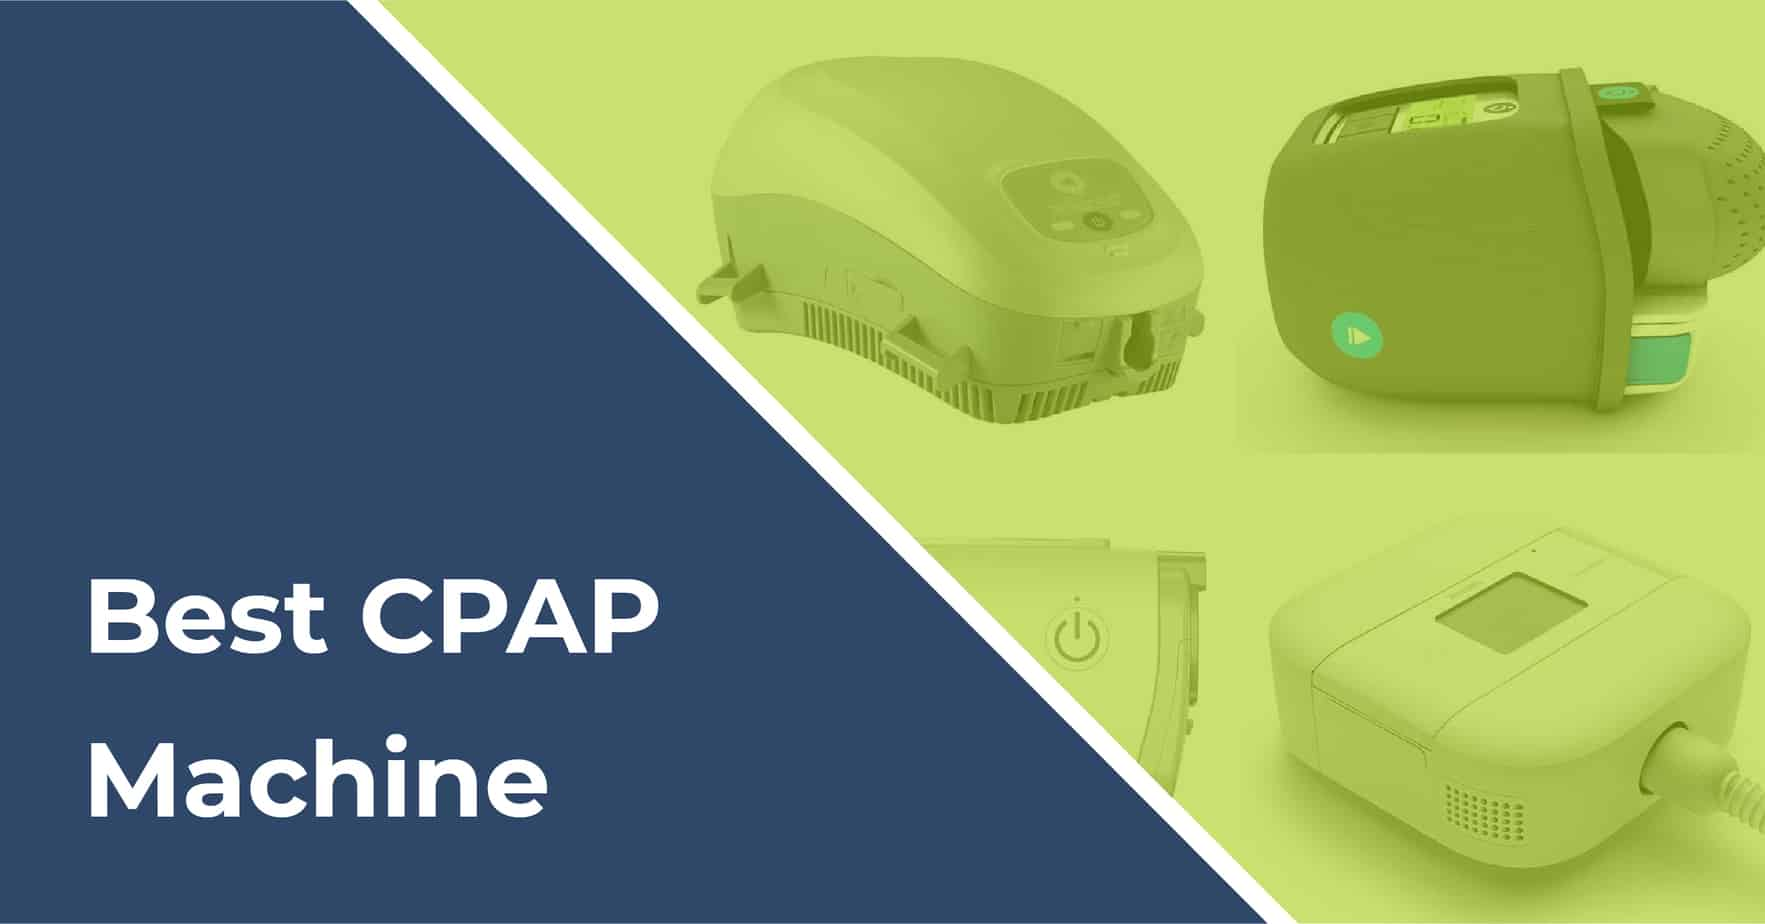 Best CPAP Machine Buying Guide 2019 - WellAwareSystems com